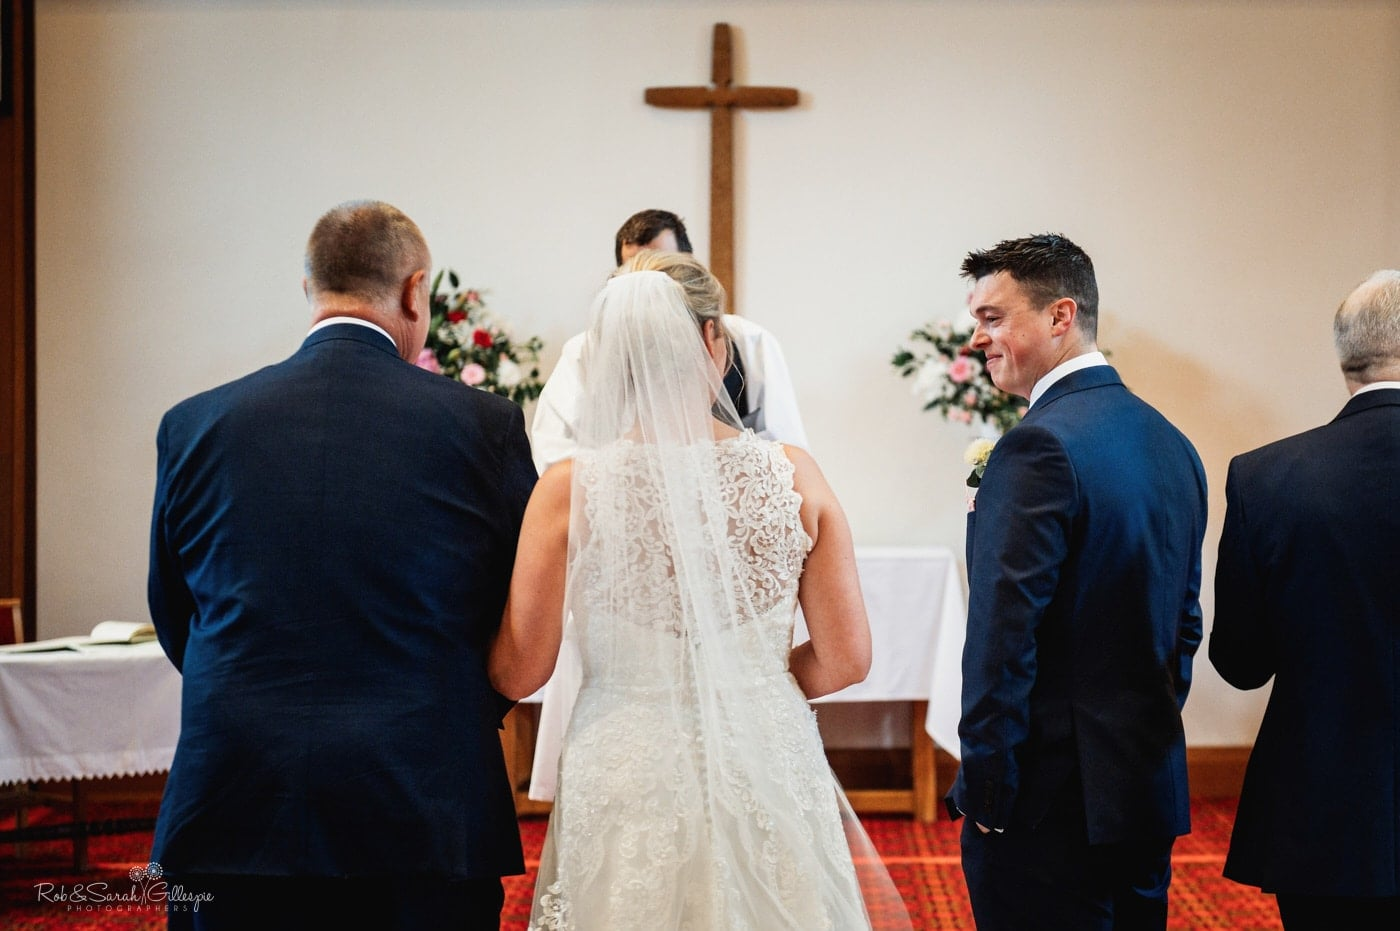 Groom smiling at bride as she walks up aisle for small wedding in chuch